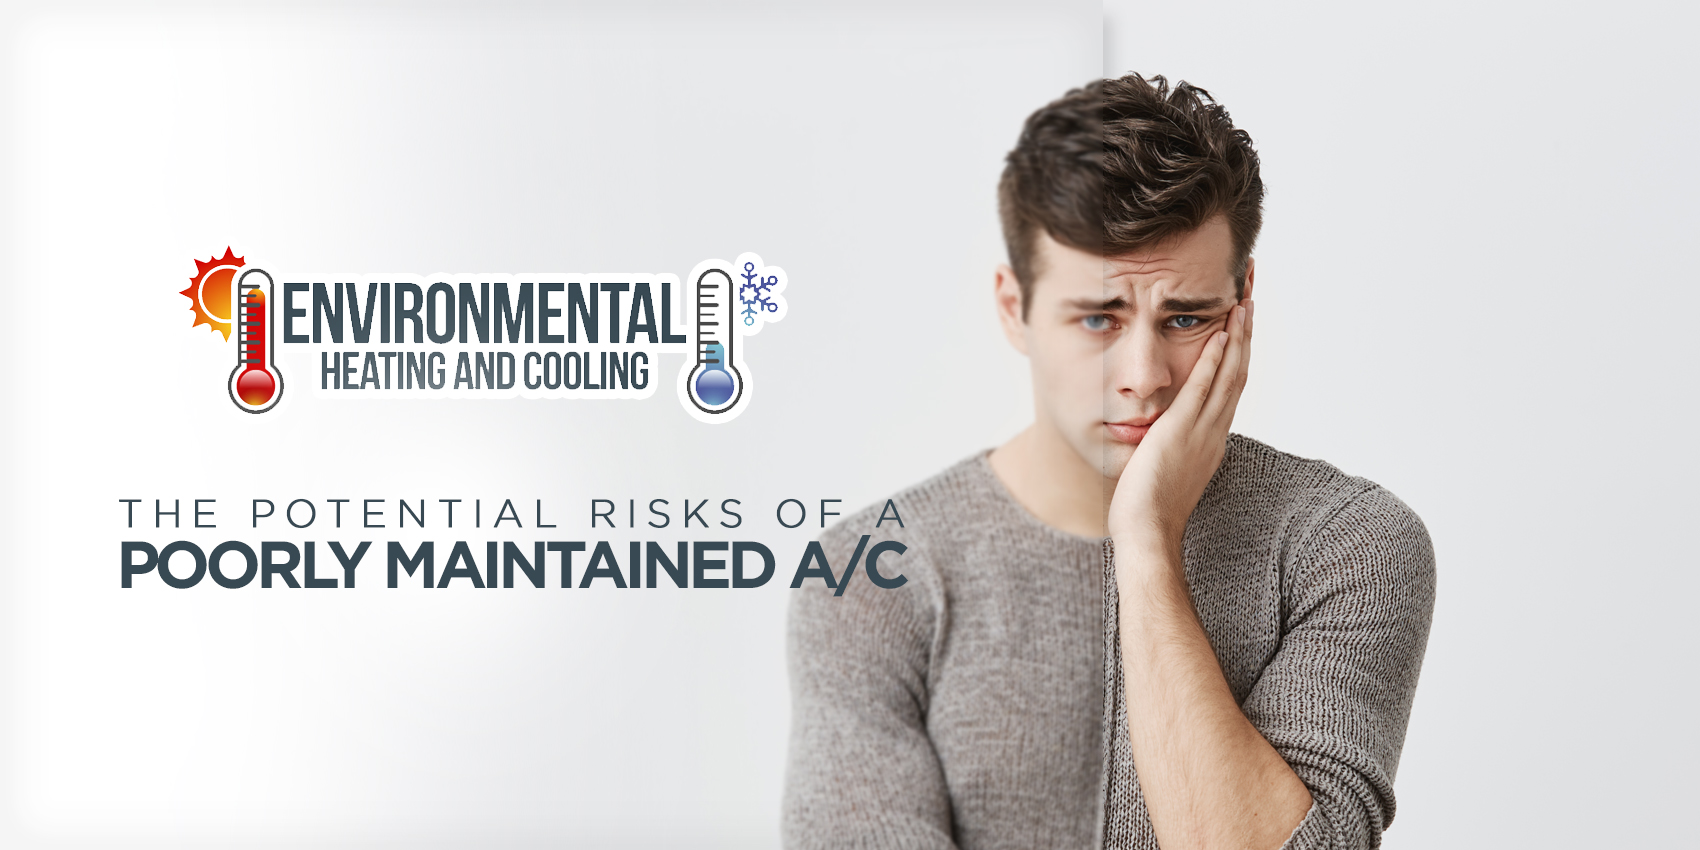 The Potential Risks of A Poorly Maintained A/C